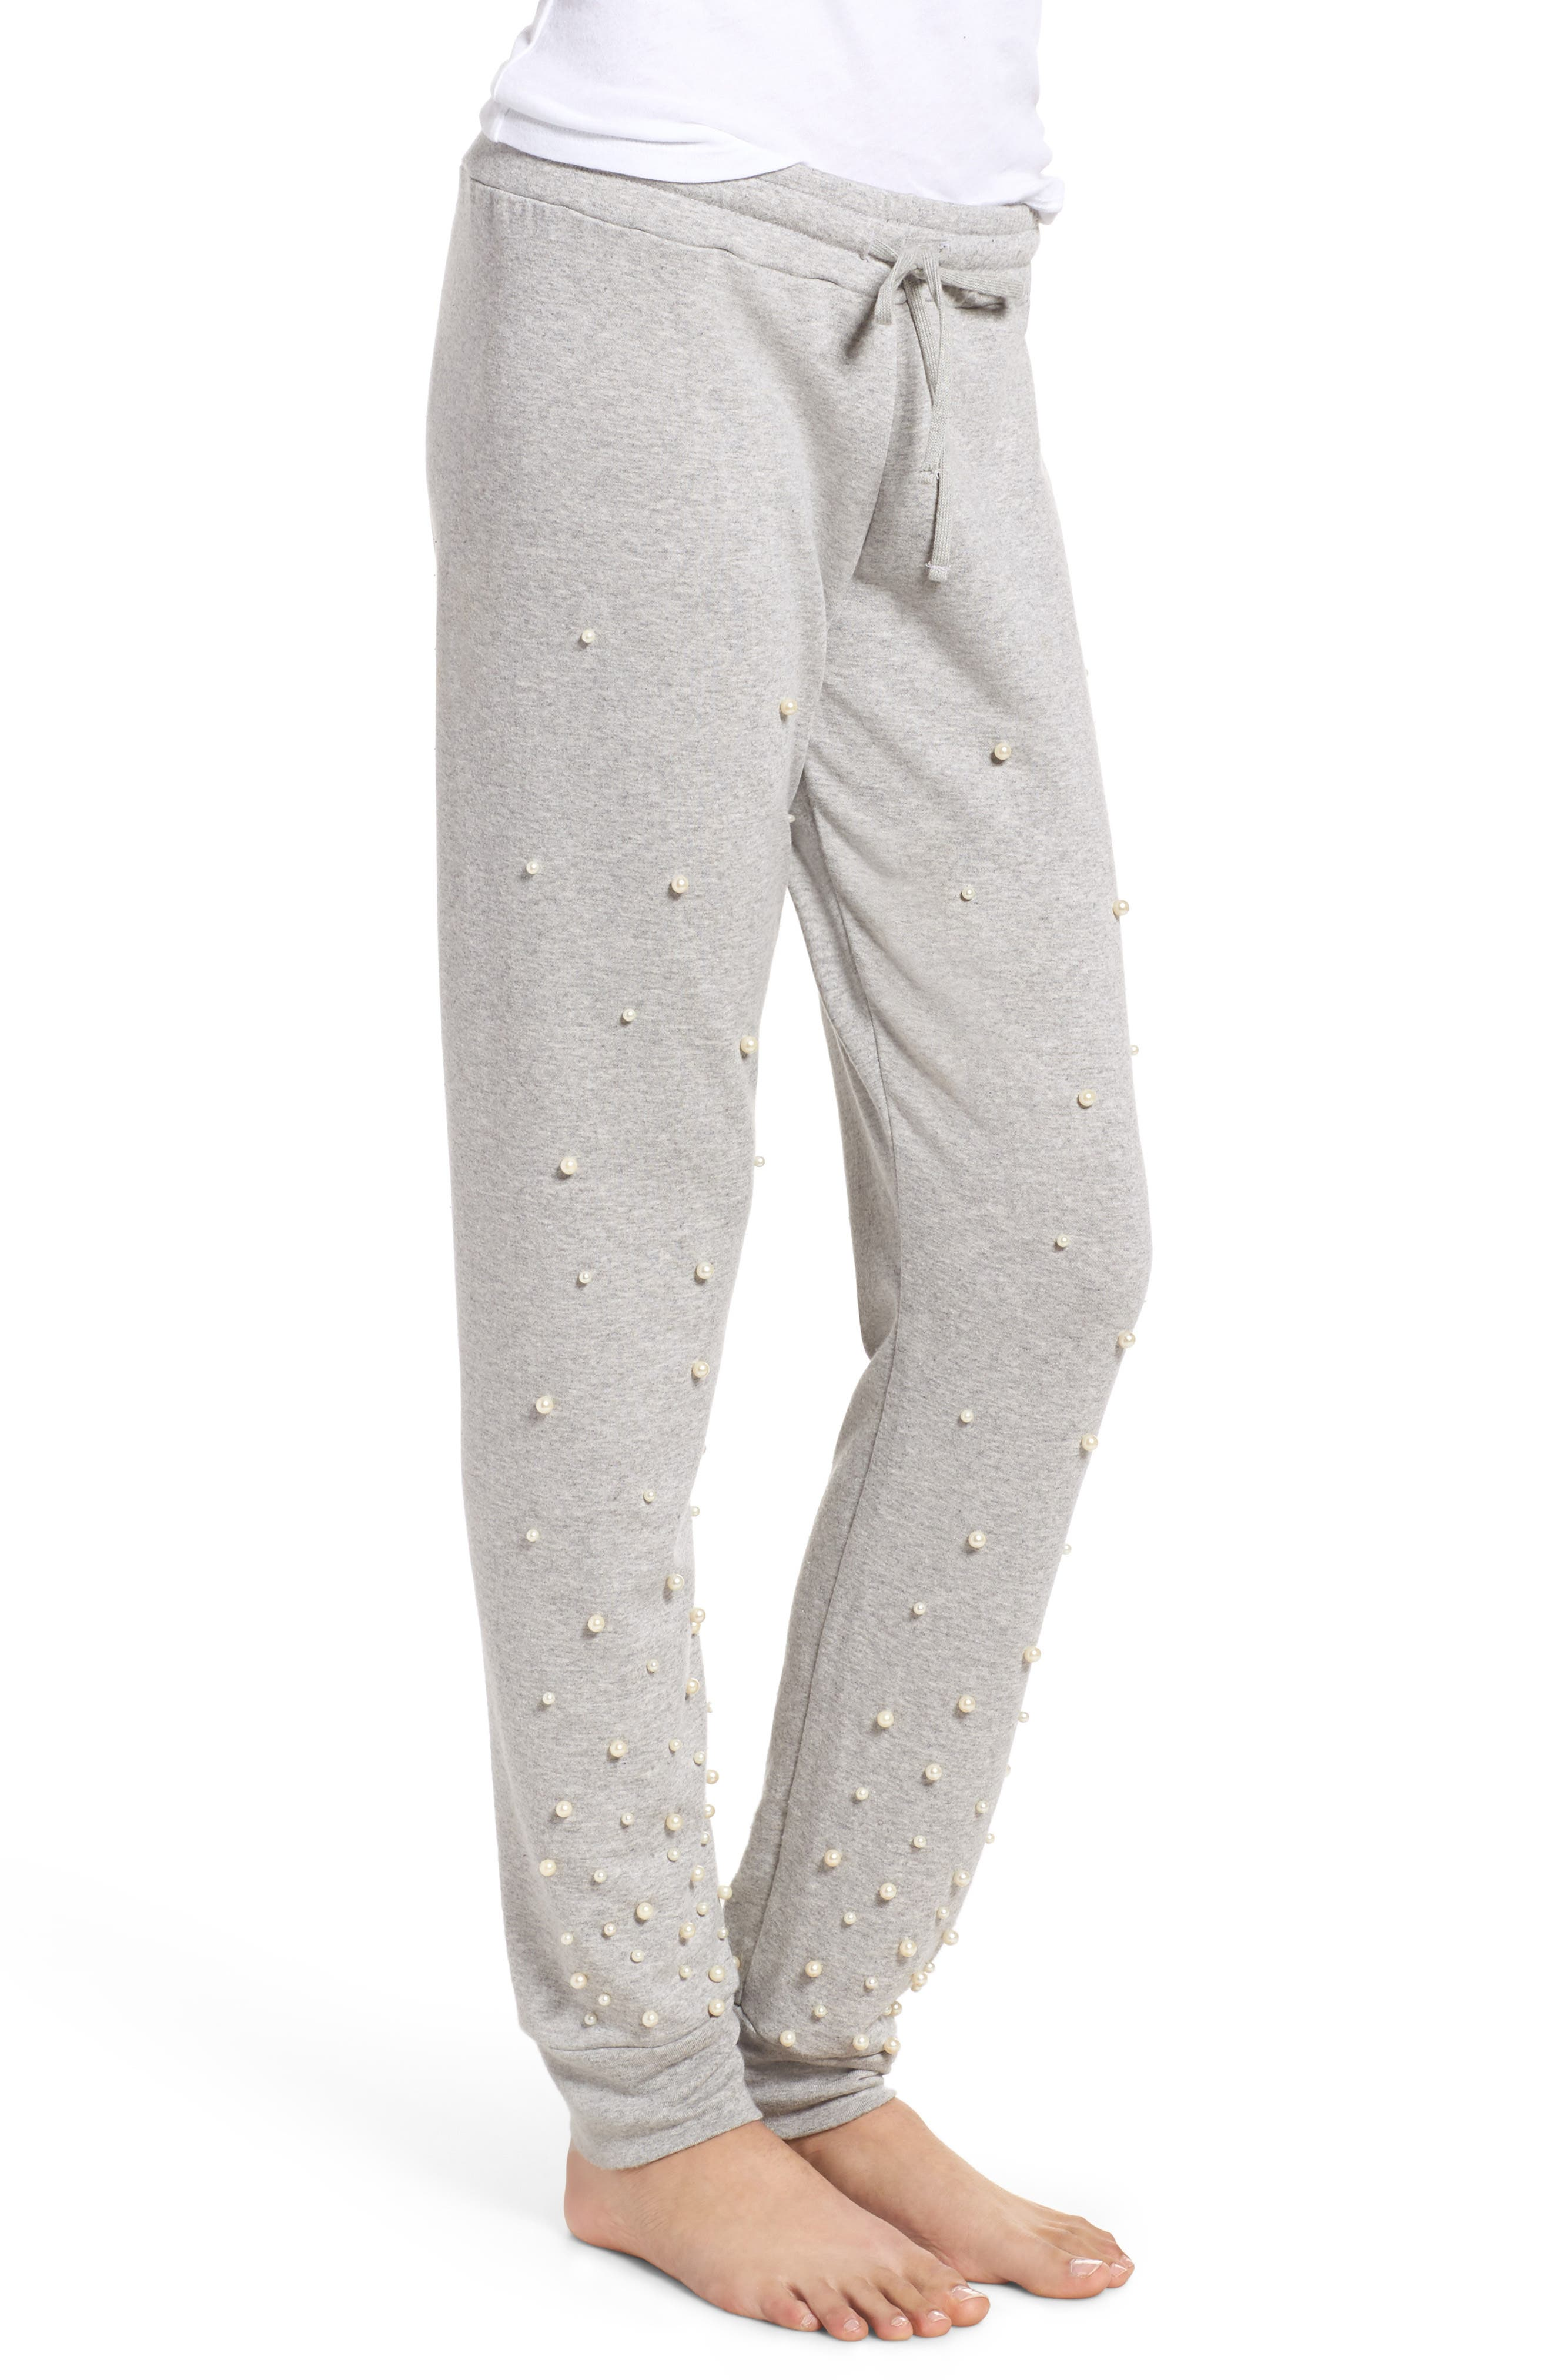 Price Imitation Pearl Embellished Lounge Pants,                             Alternate thumbnail 3, color,                             Heather Grey